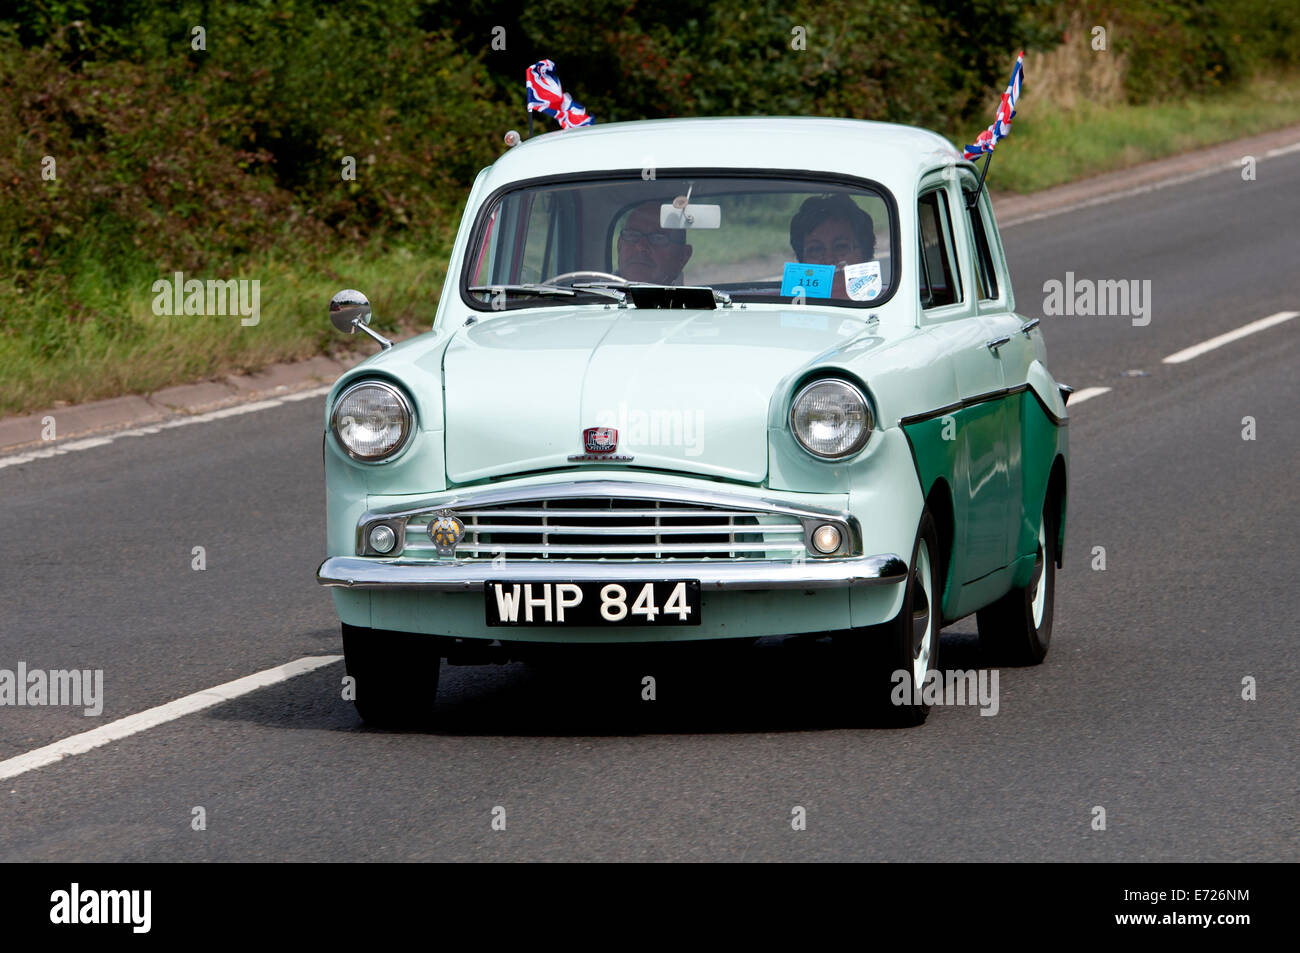 Standard Pennant car on the Fosse Way road, Warwickshire, UK - Stock Image